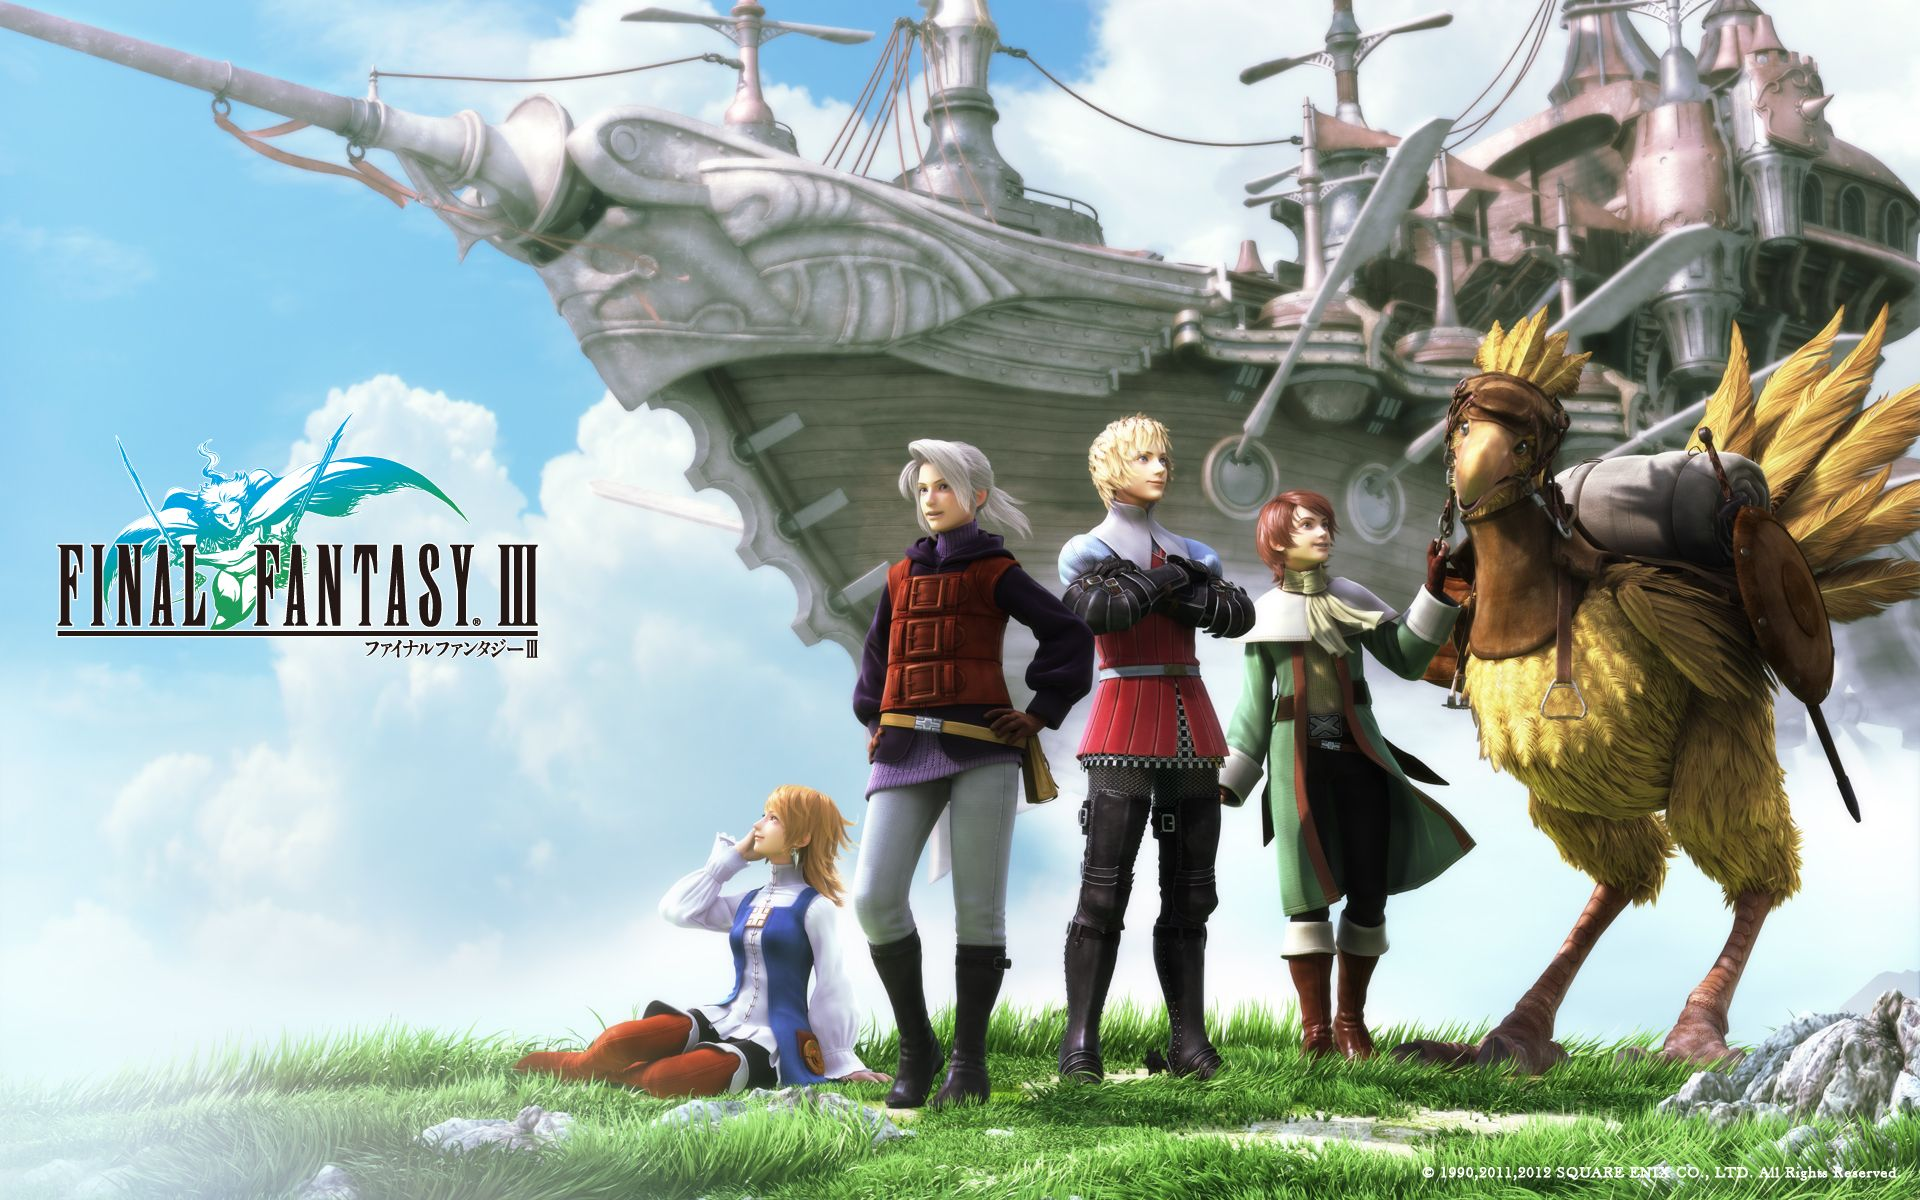 Final fantasy 3 to be released on steam according to square enix classic rpg